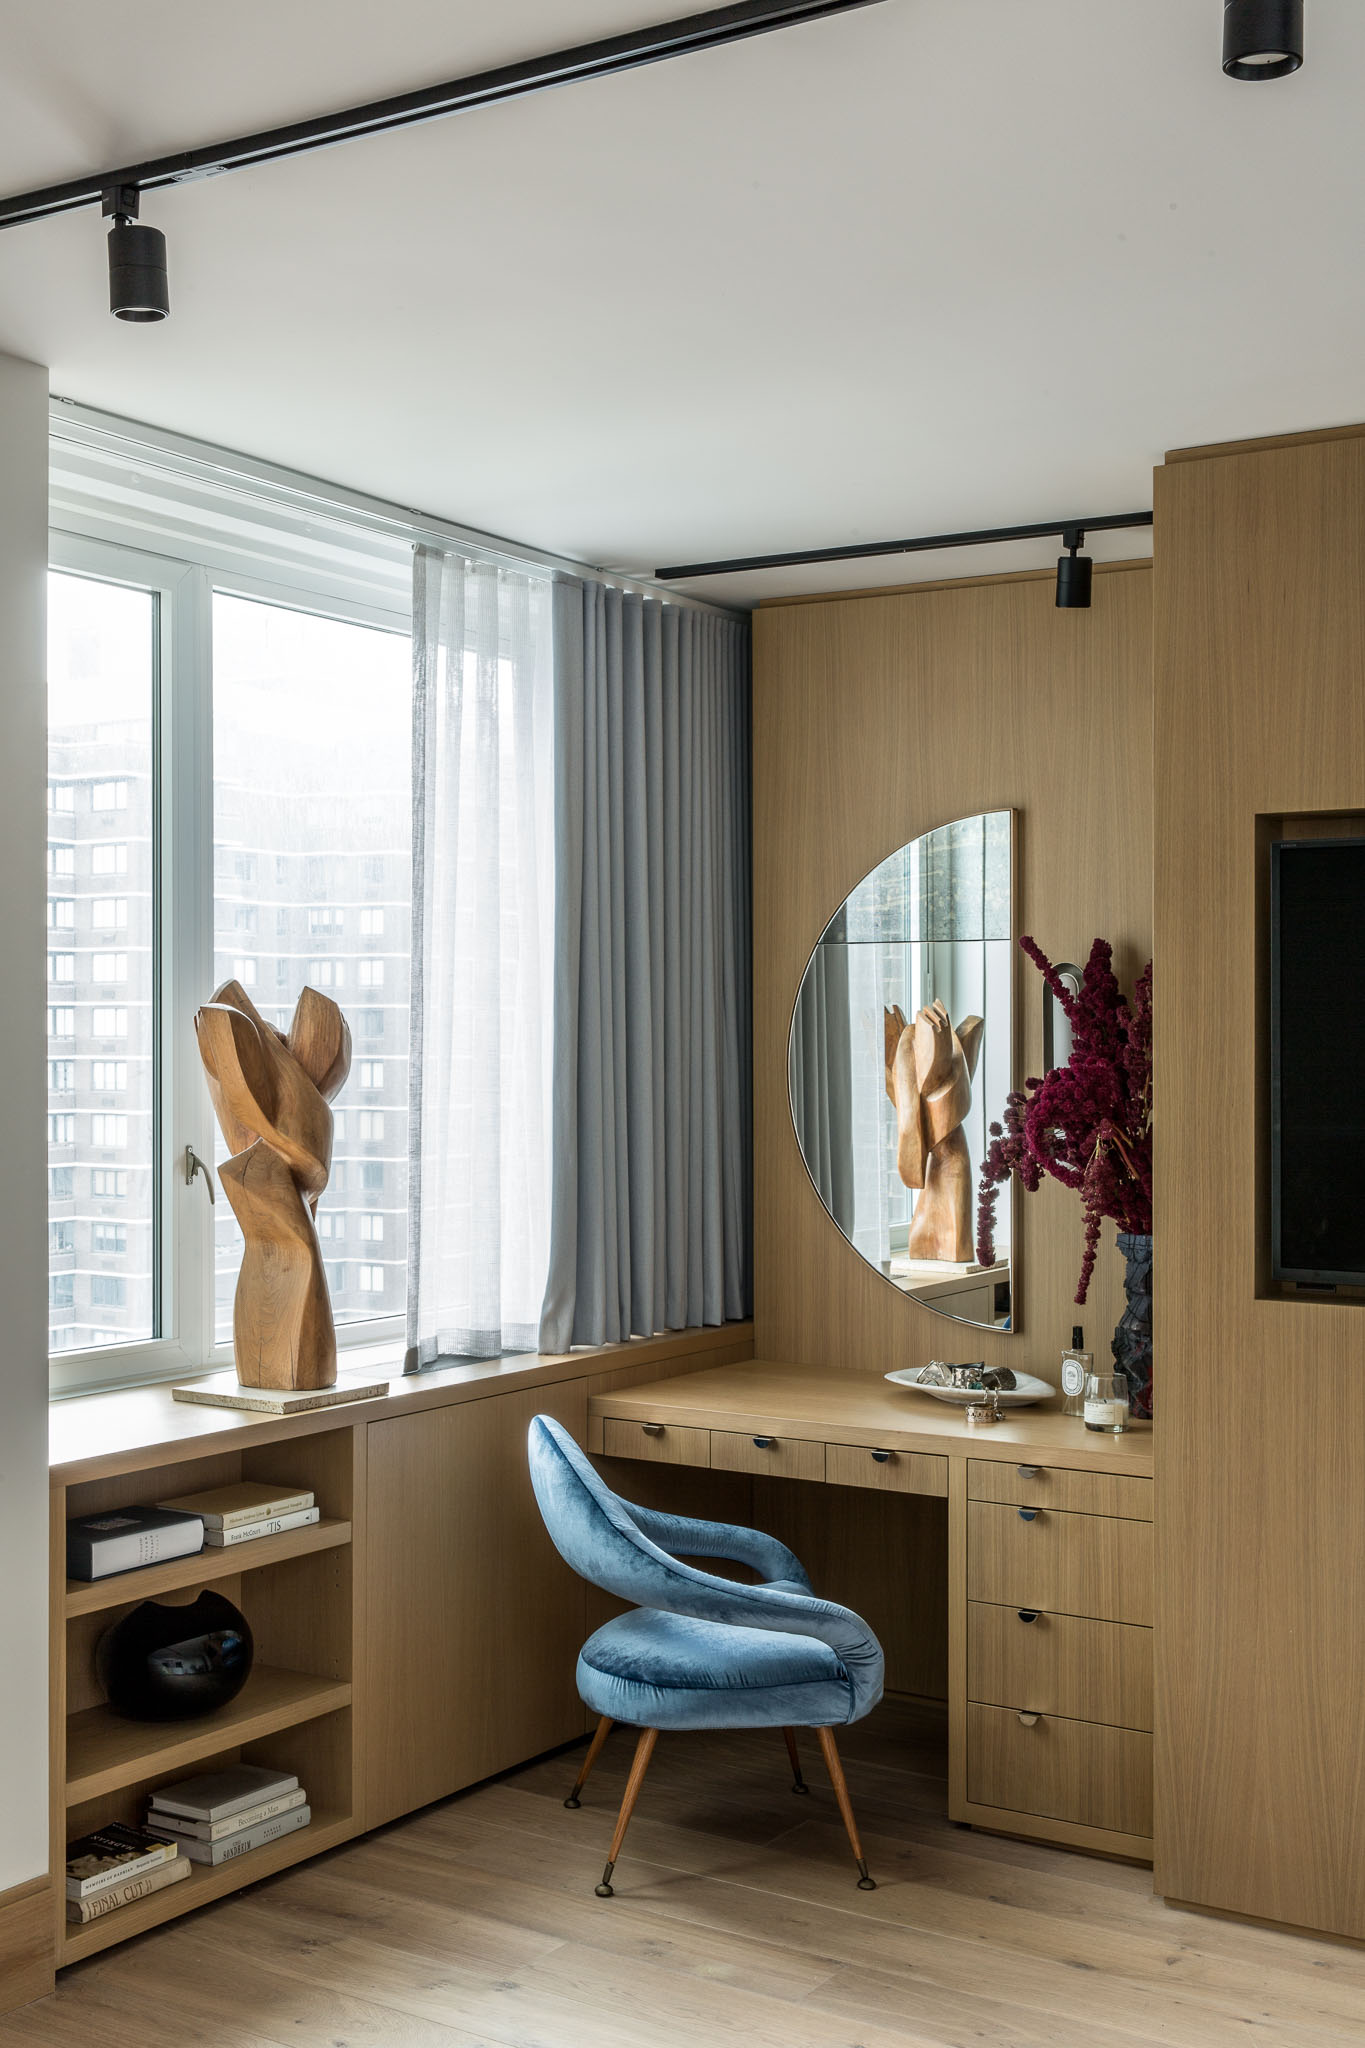 Columbus Circle Apartment, Designed by: Marc Houston, Photographed by: Sean Litchfield for Homepolish - Life-Styled.net